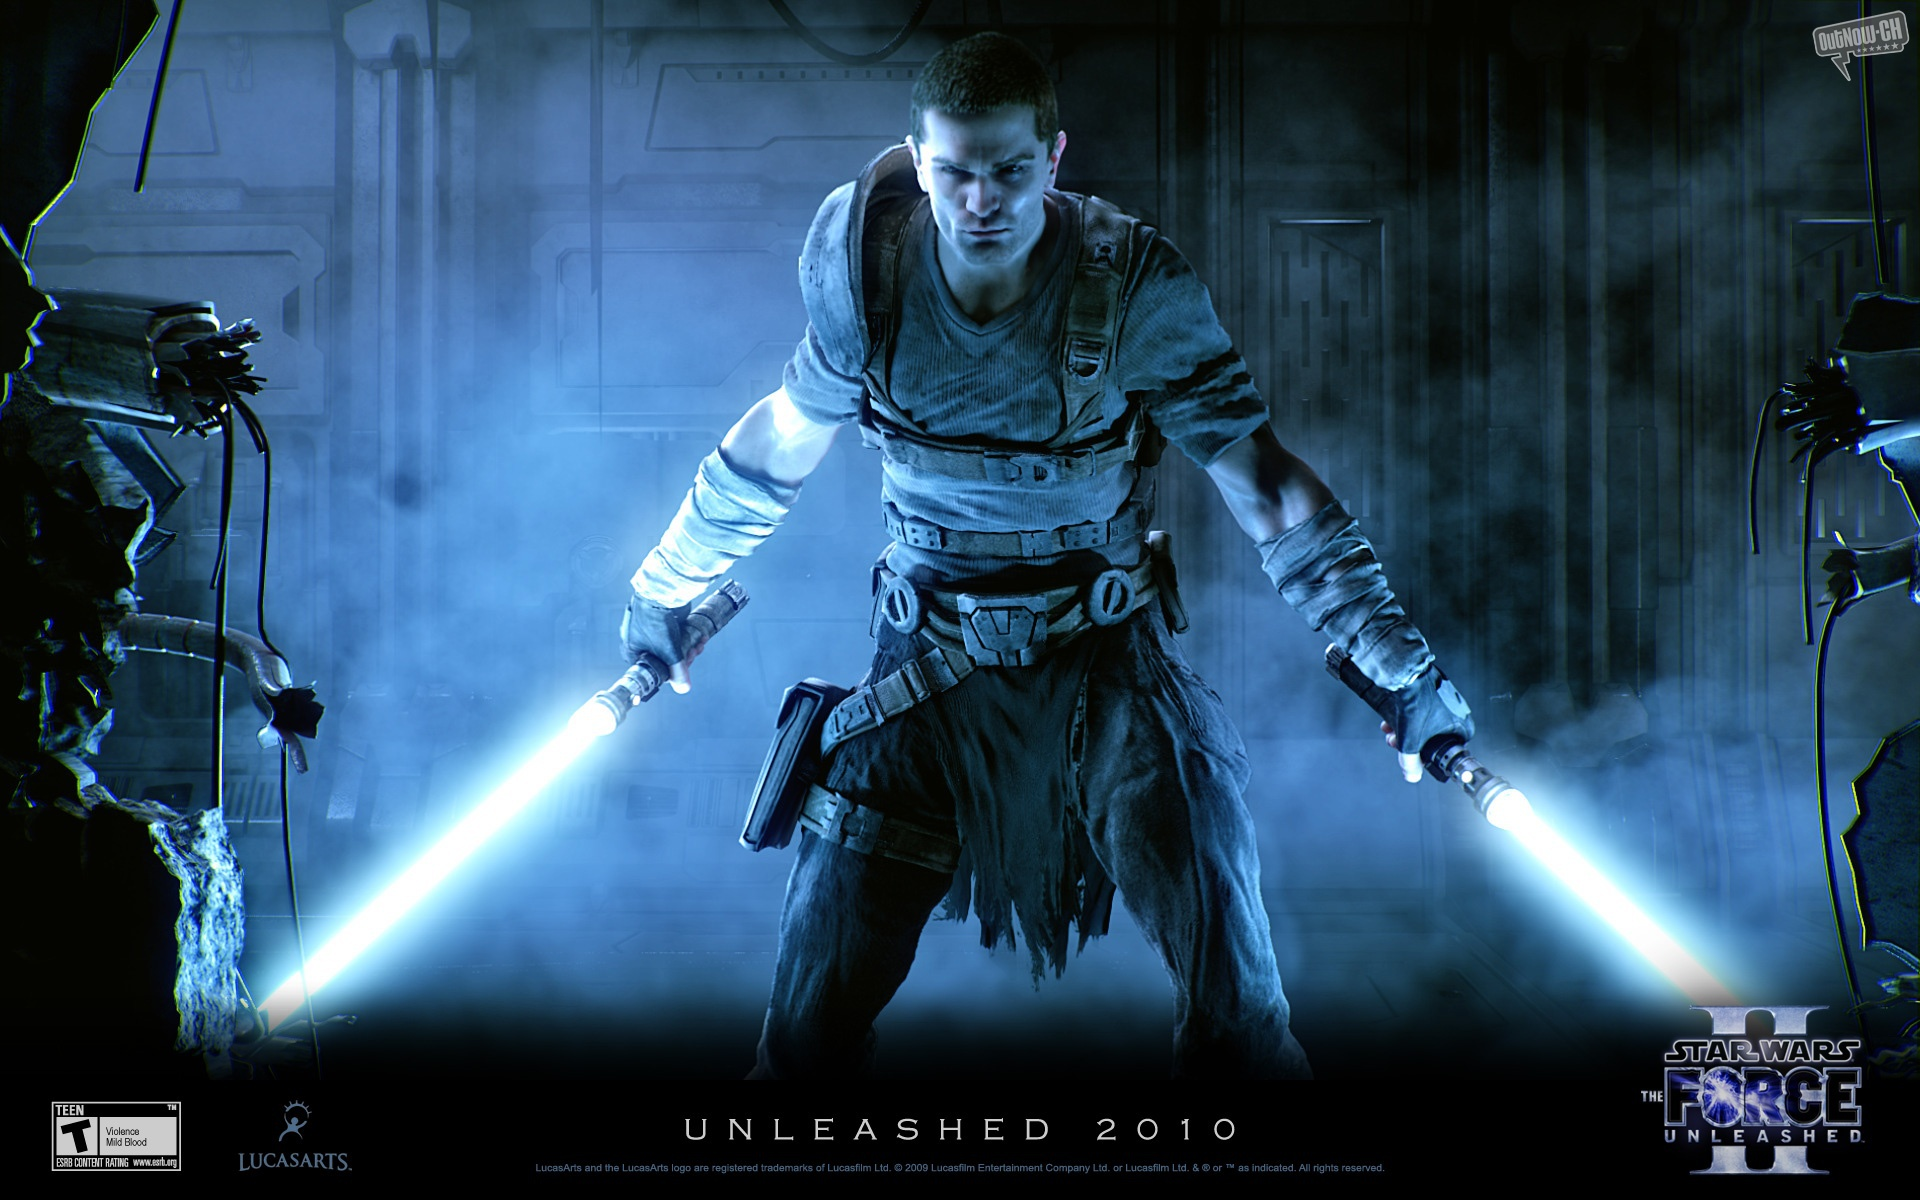 star wars: force unleashed 2 wallpapers | star wars: force